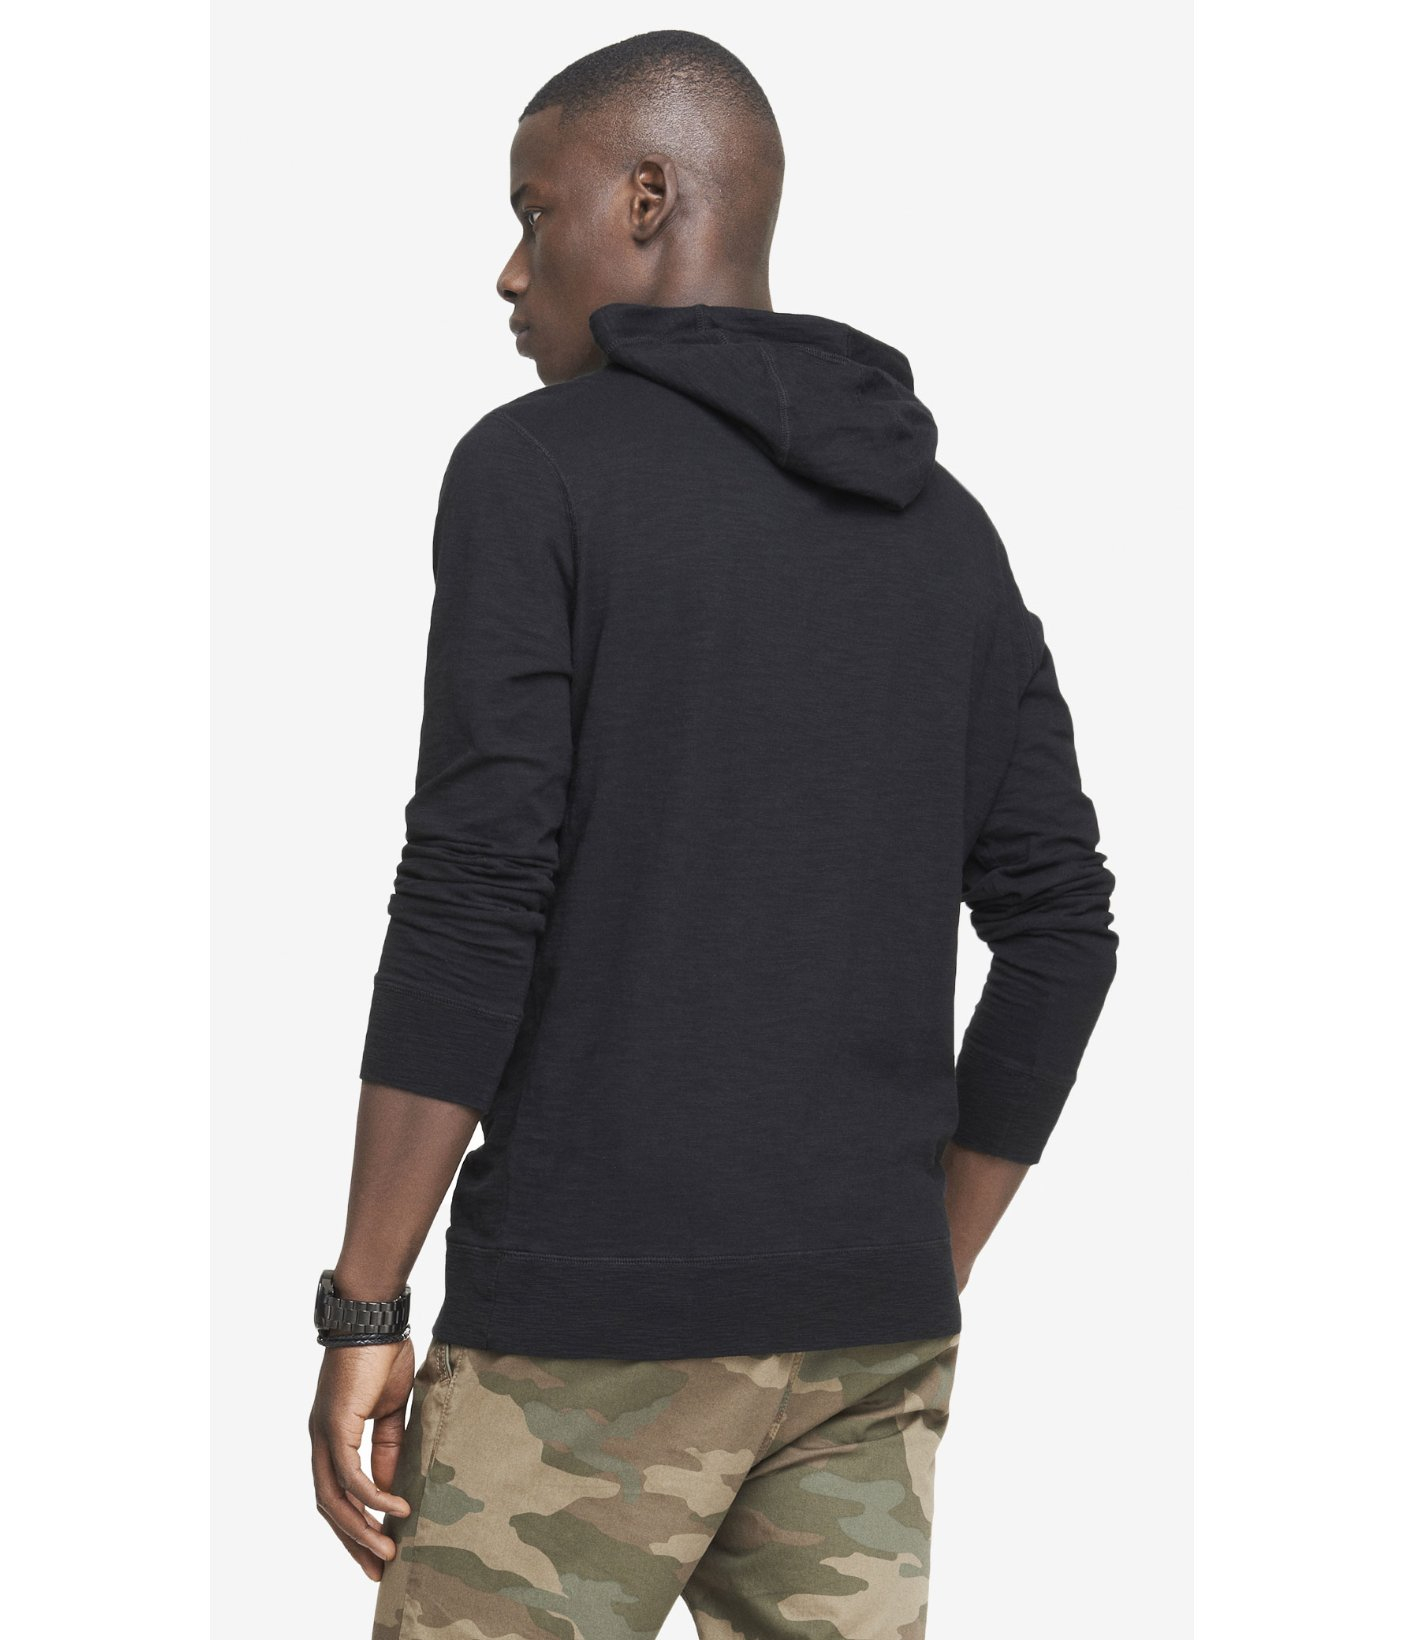 lyst express slub funnel neck graphic hoodie triangulate in black for men. Black Bedroom Furniture Sets. Home Design Ideas